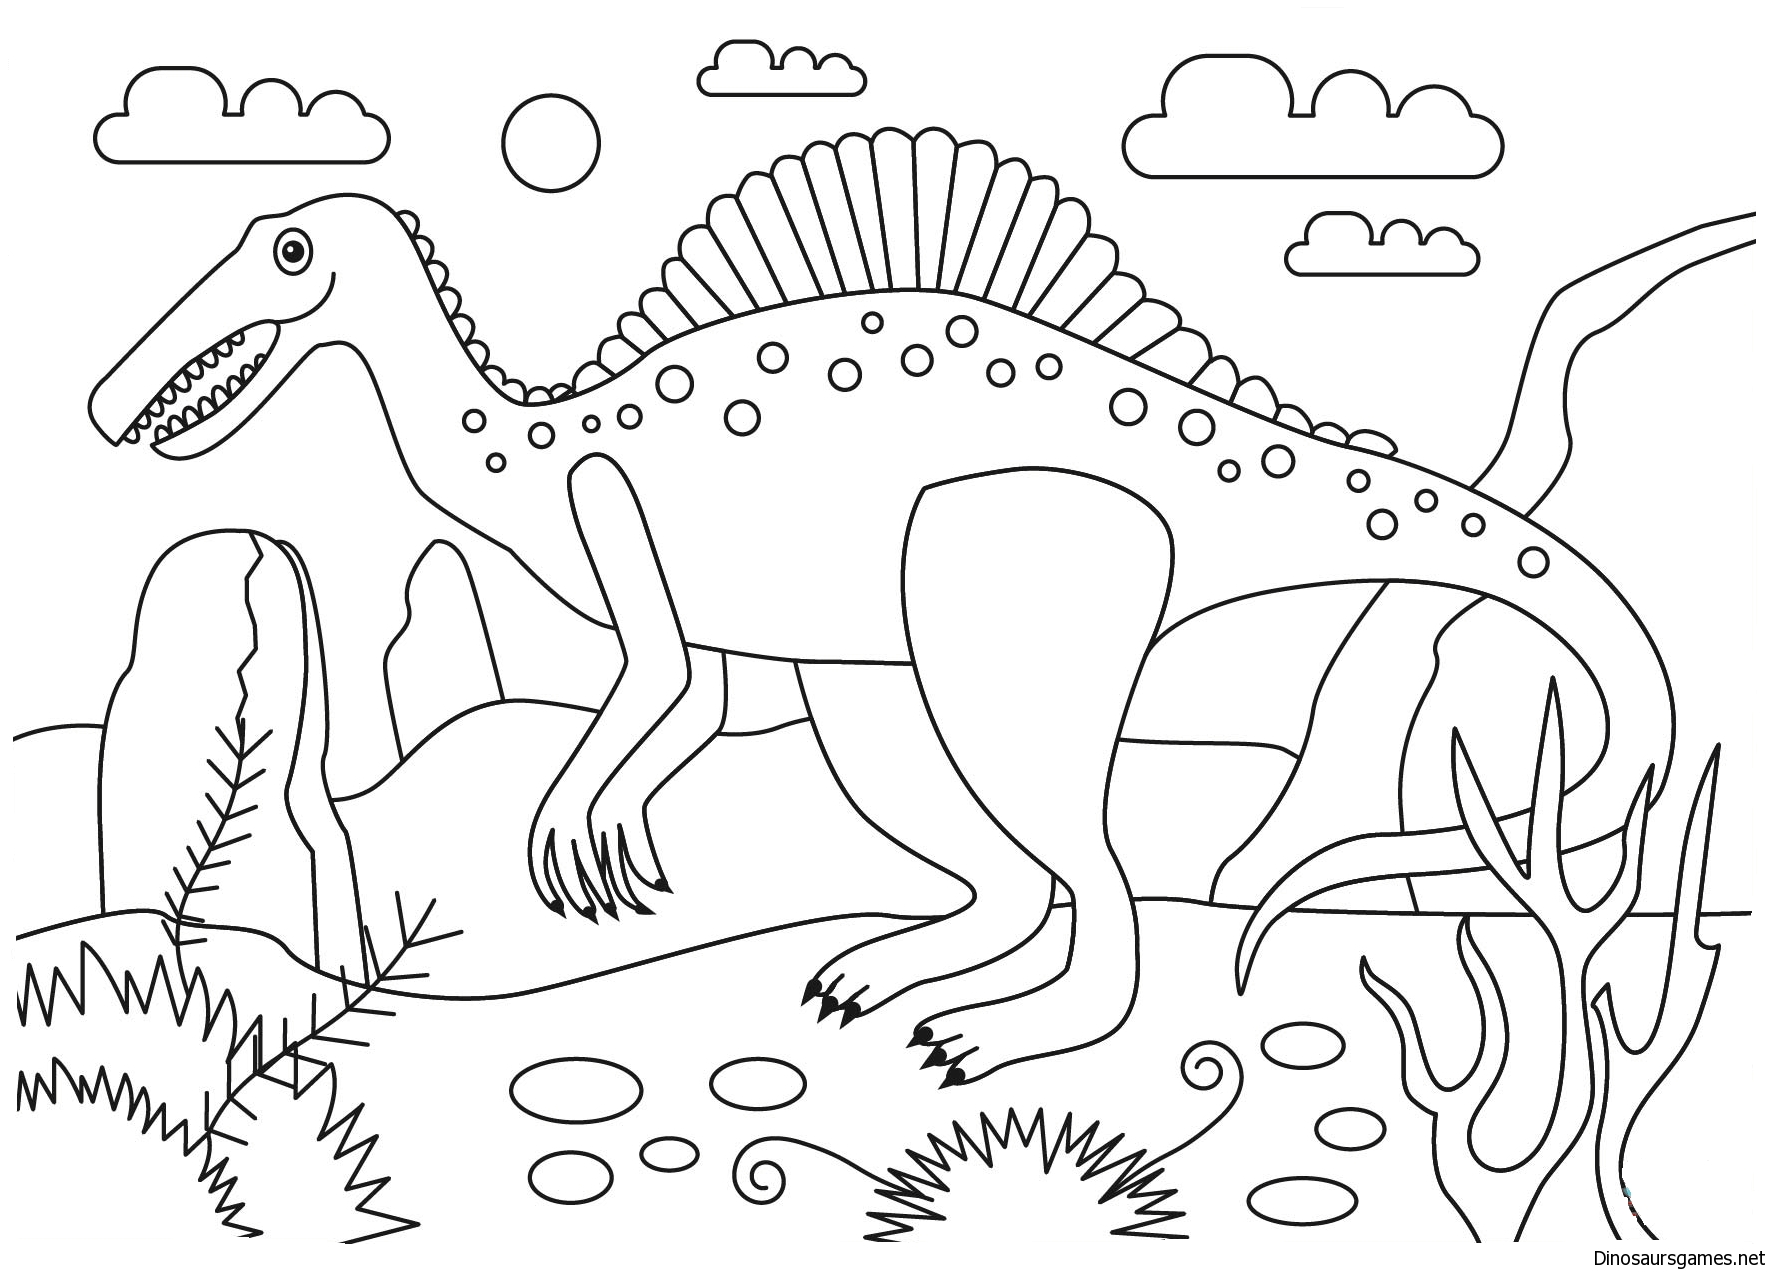 spinosaurus dinosaur coloring page dinosaur coloring pages. Black Bedroom Furniture Sets. Home Design Ideas